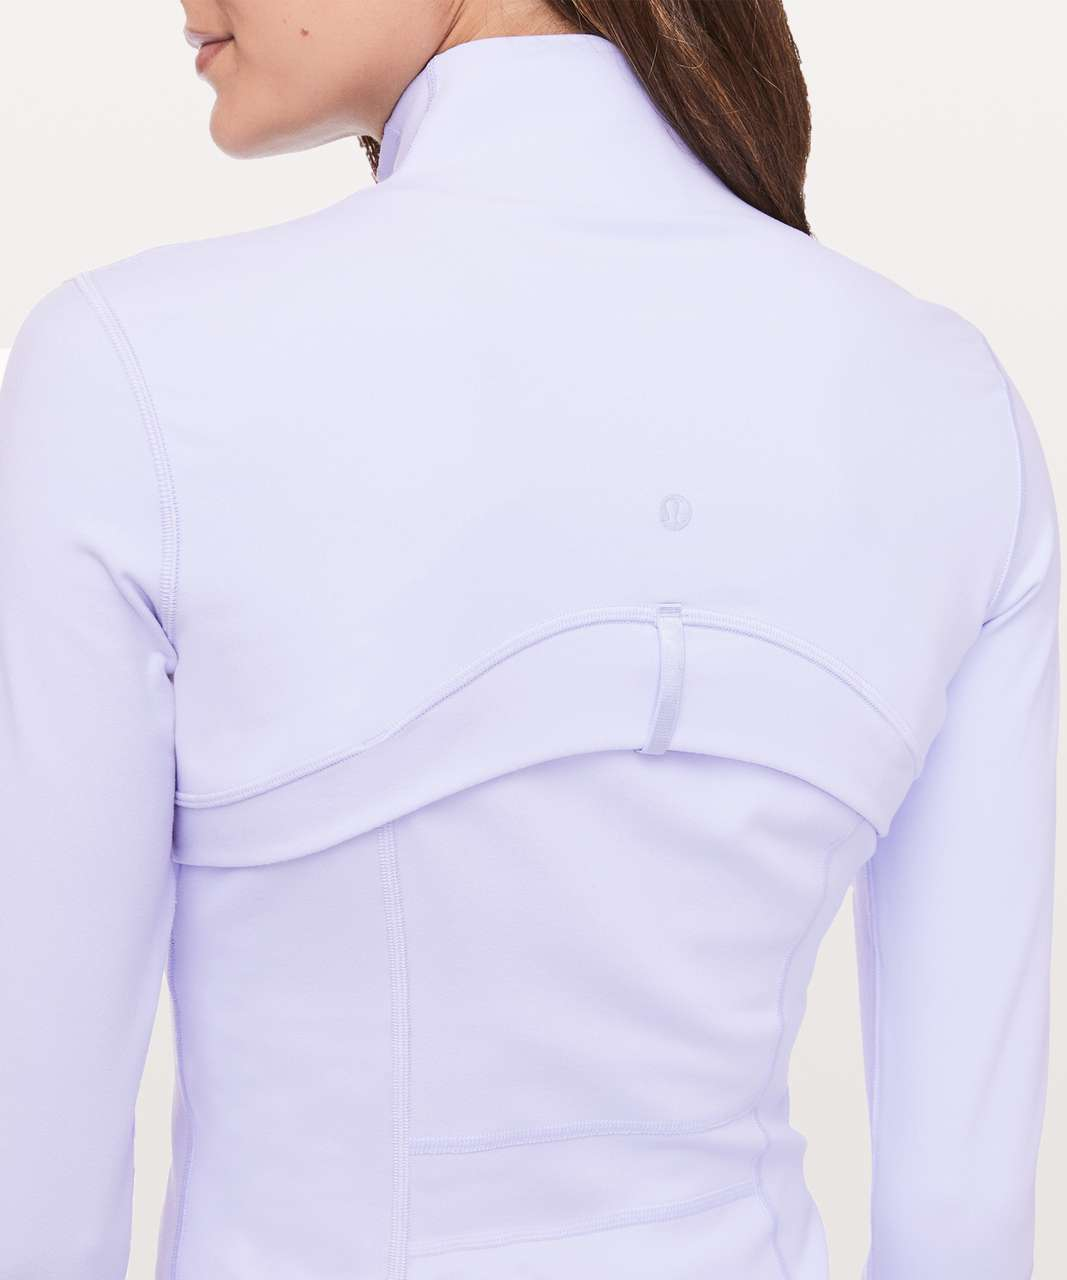 Lululemon Define Jacket - Cool Breeze